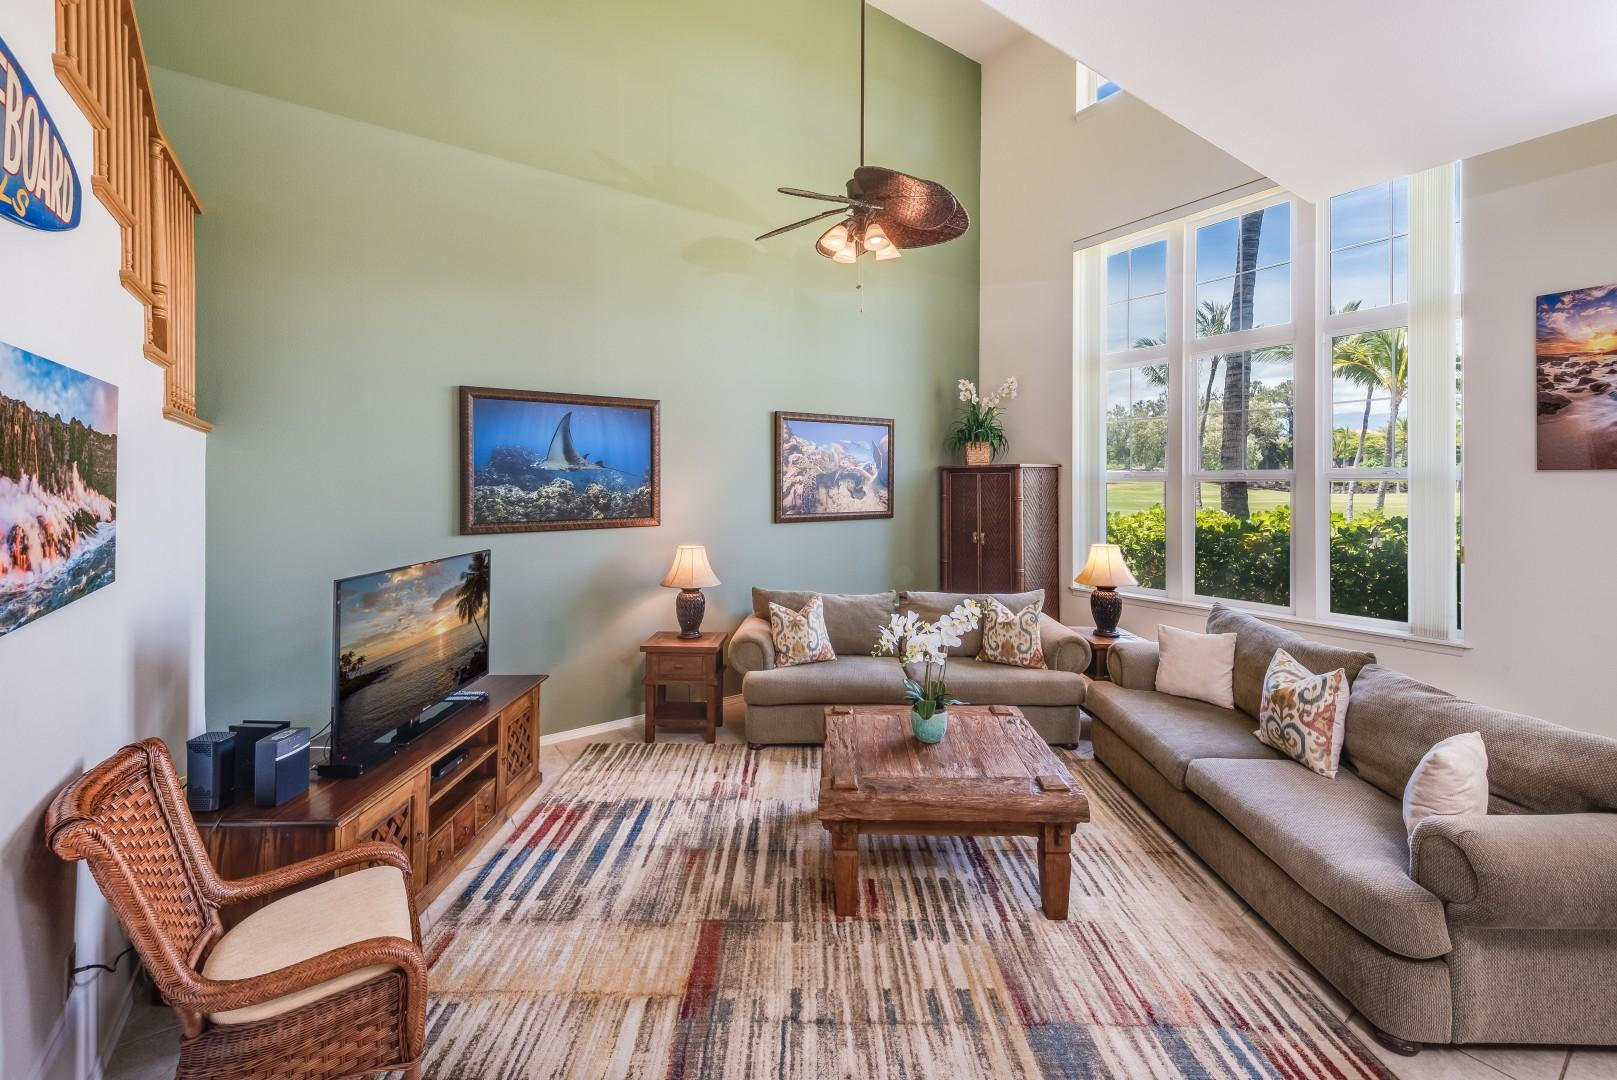 Sunlight Bathes the Spacious Living Room Through Large Picture Windows